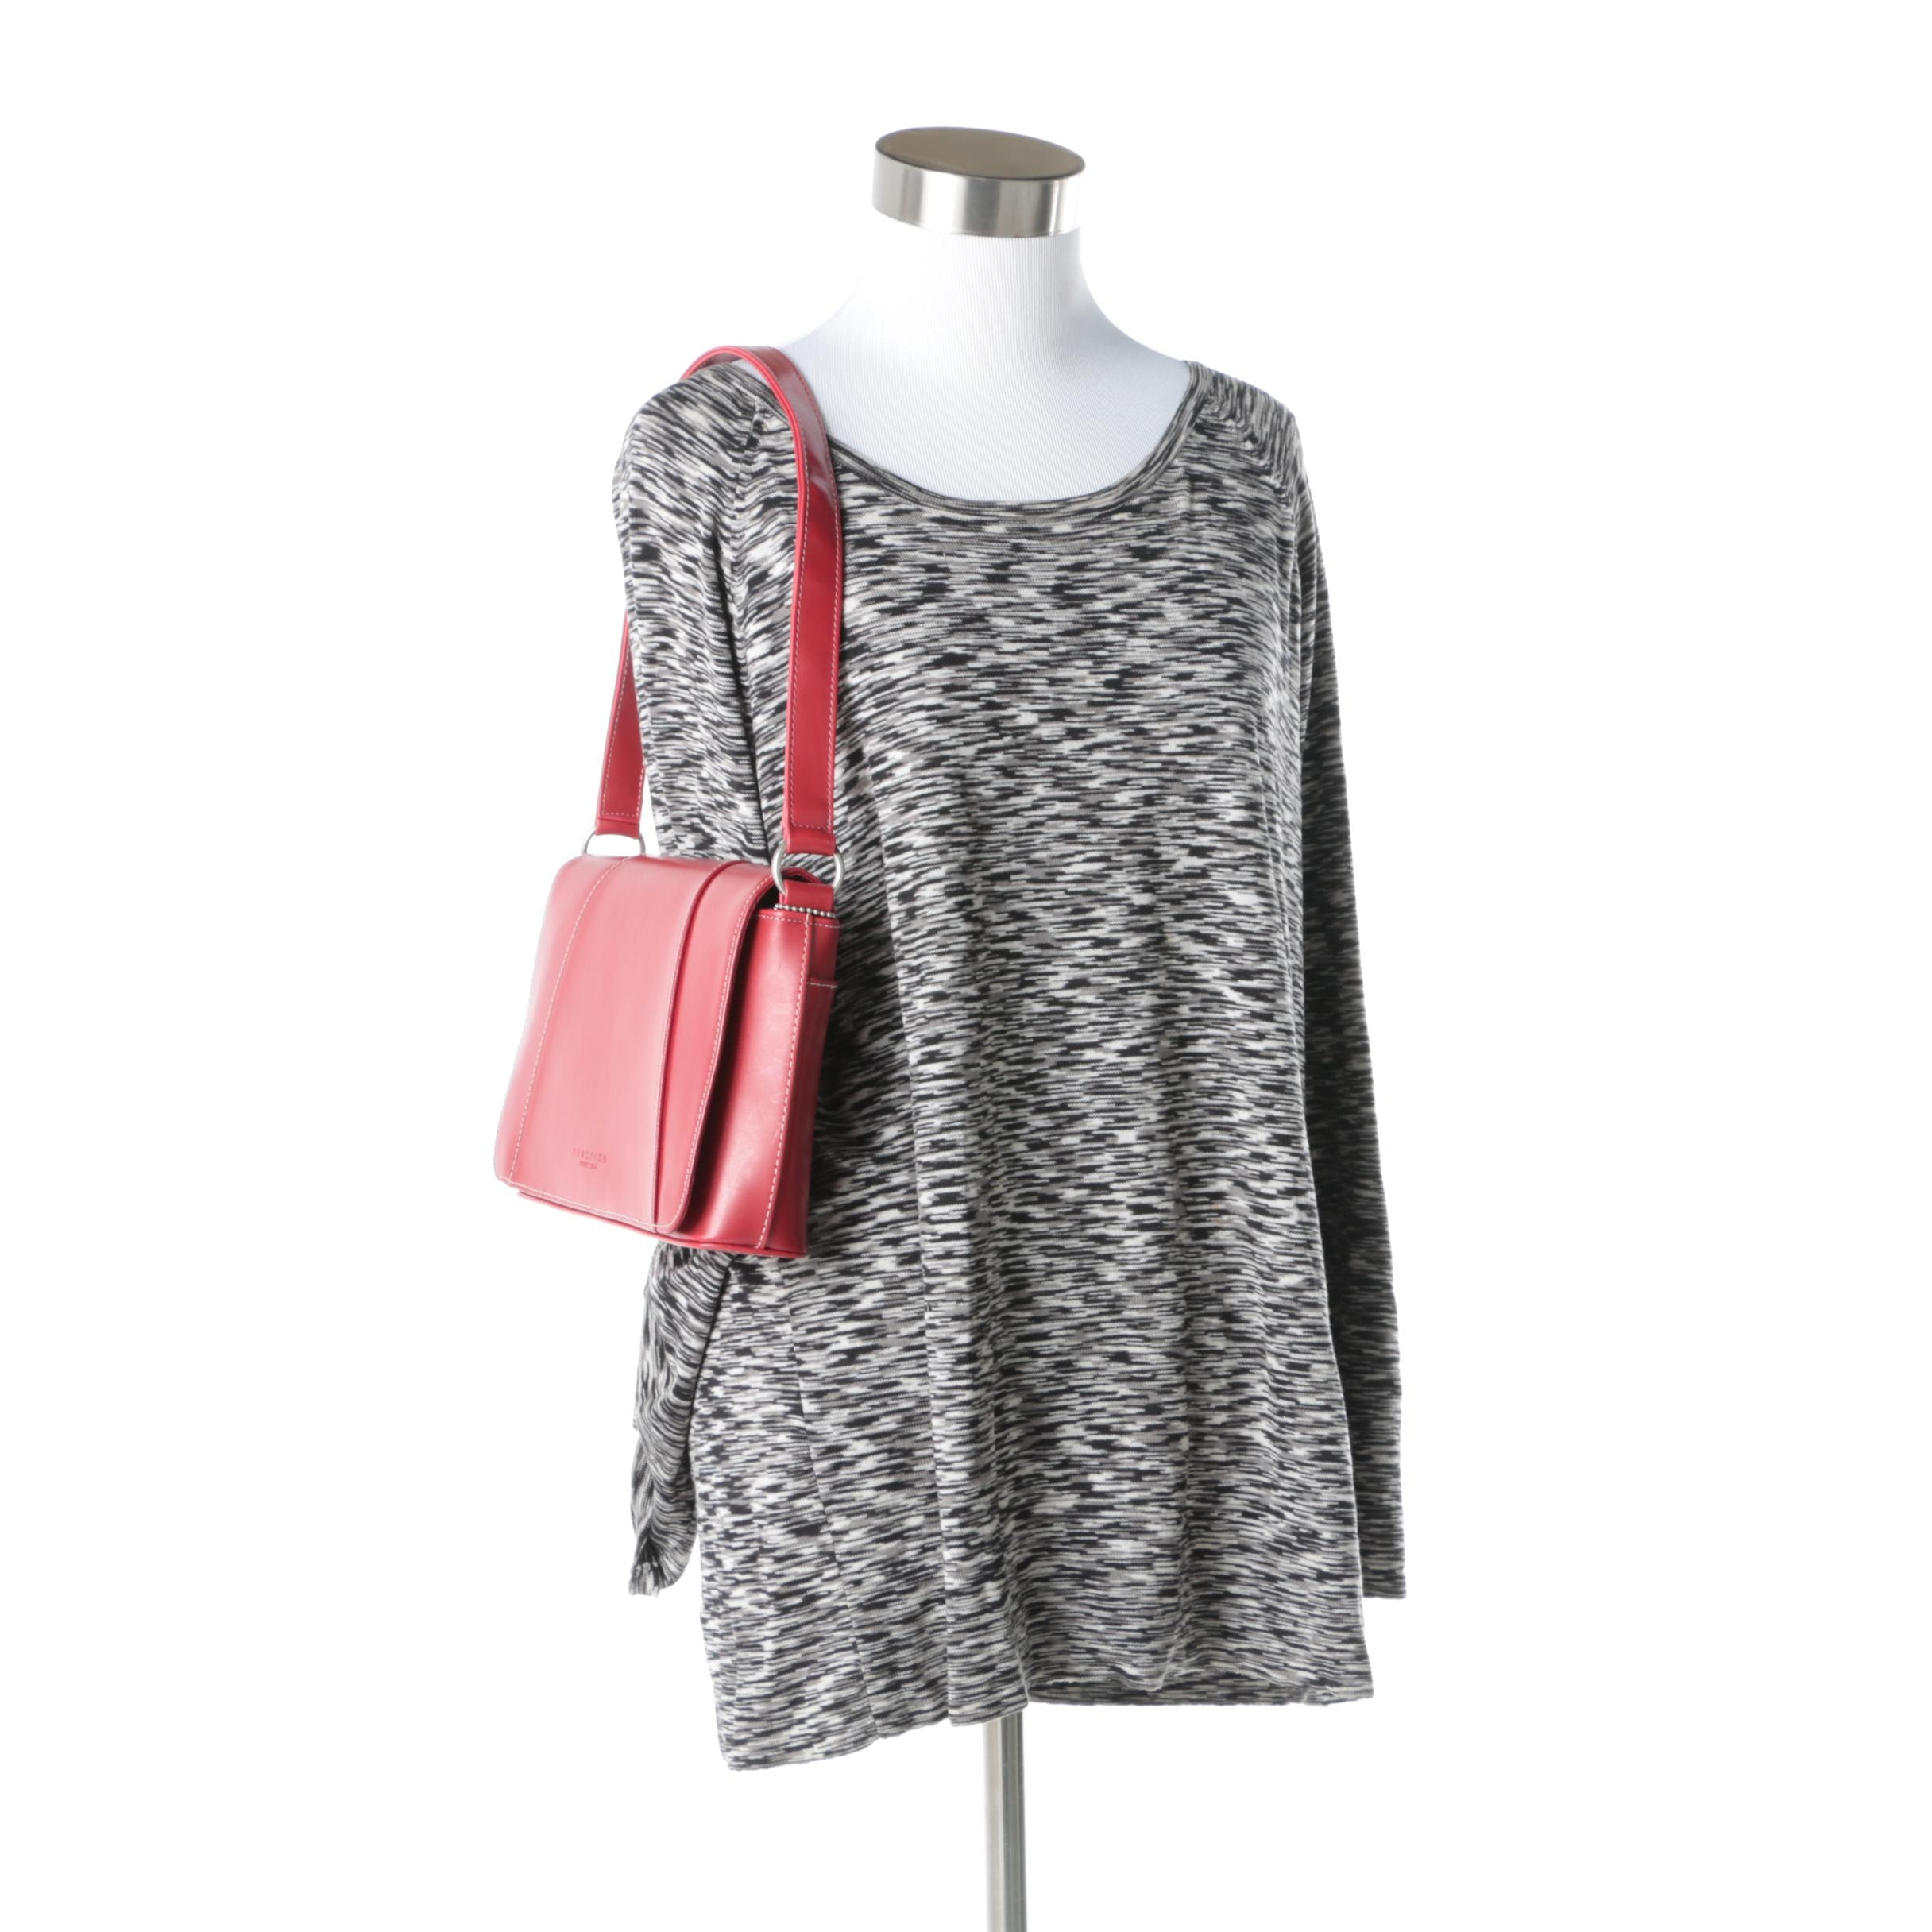 Kenneth Cole Reaction Sweater and Handbag